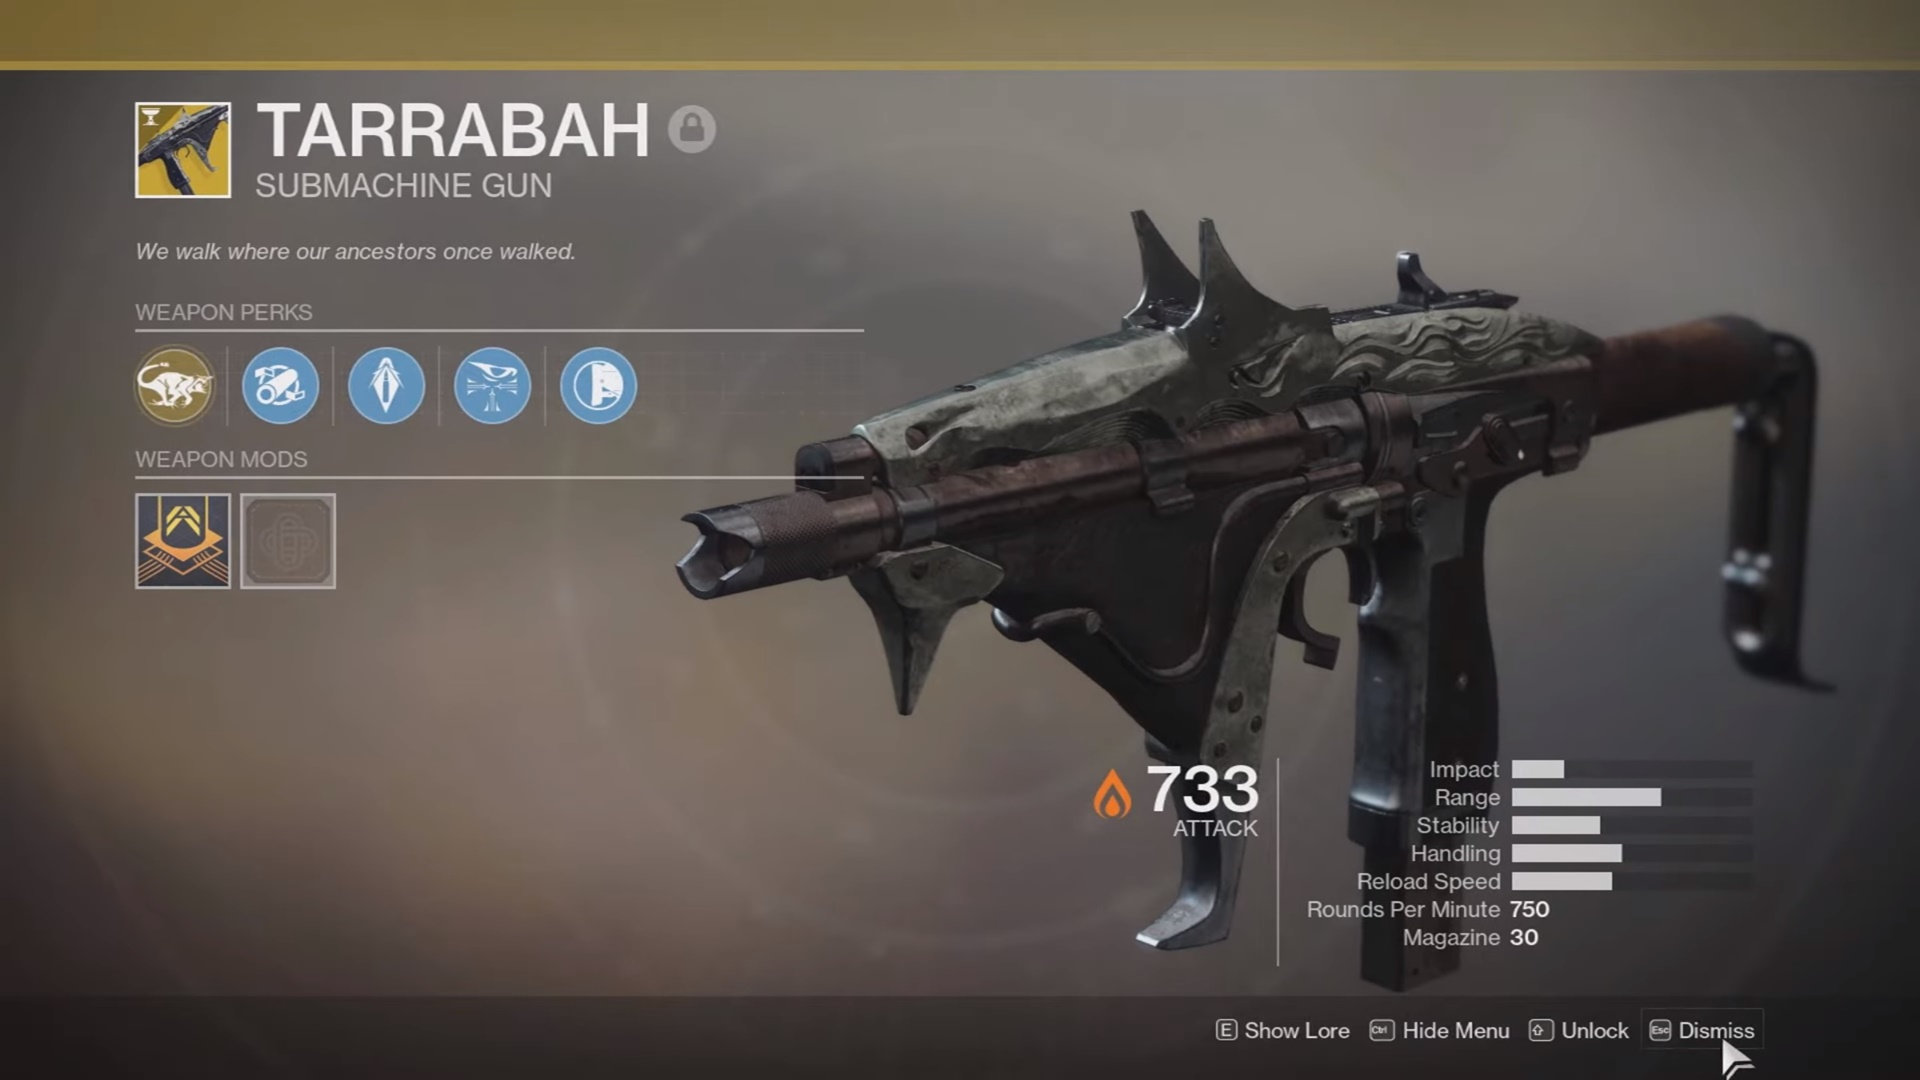 Destiny 2 Tarrabah: how to get the Crown of Sorrow Exotic